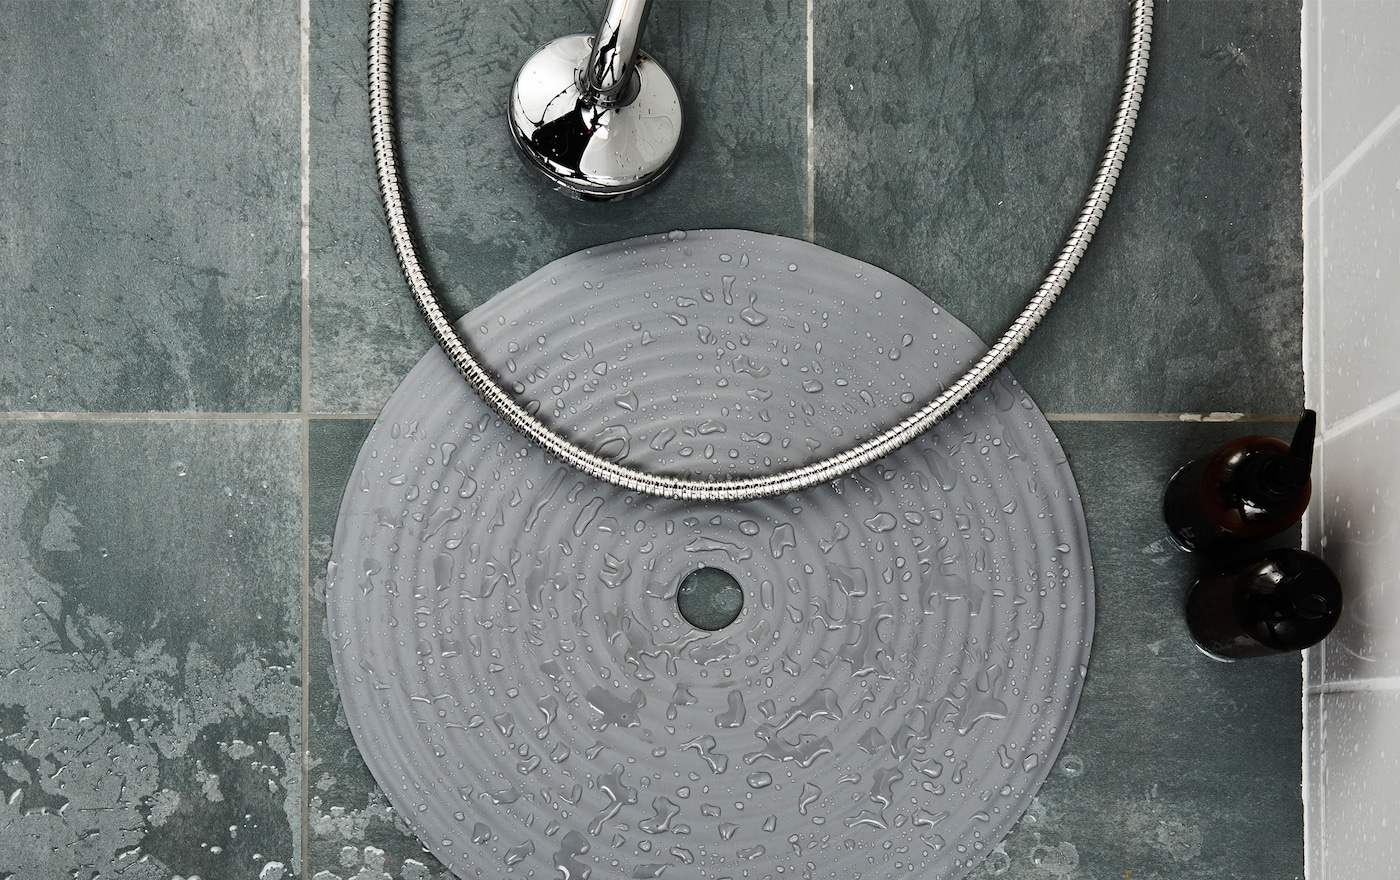 A tub mat sits on the floor of a wet shower.